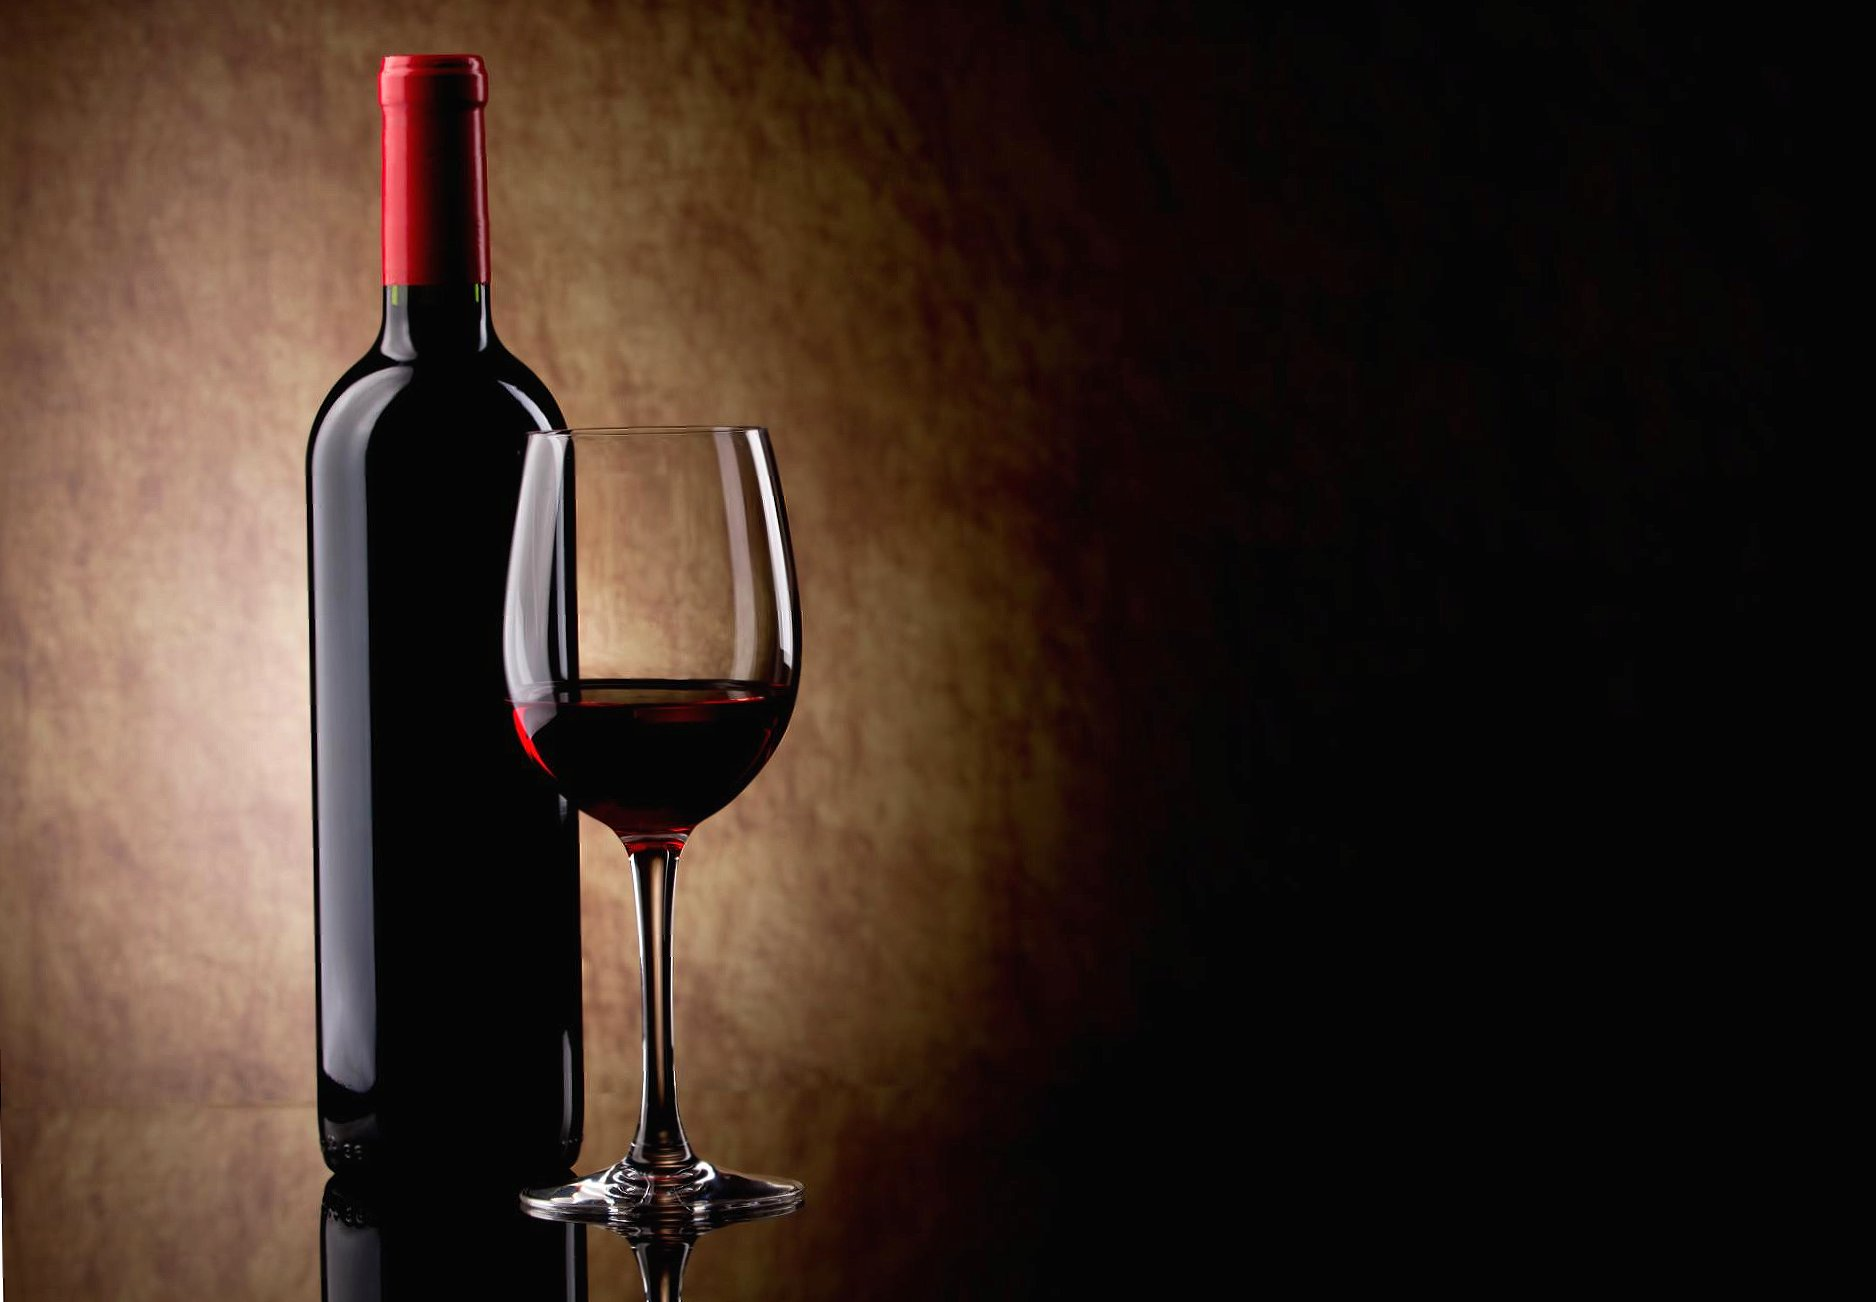 Red wine glass and bottle wallpapers HD quality